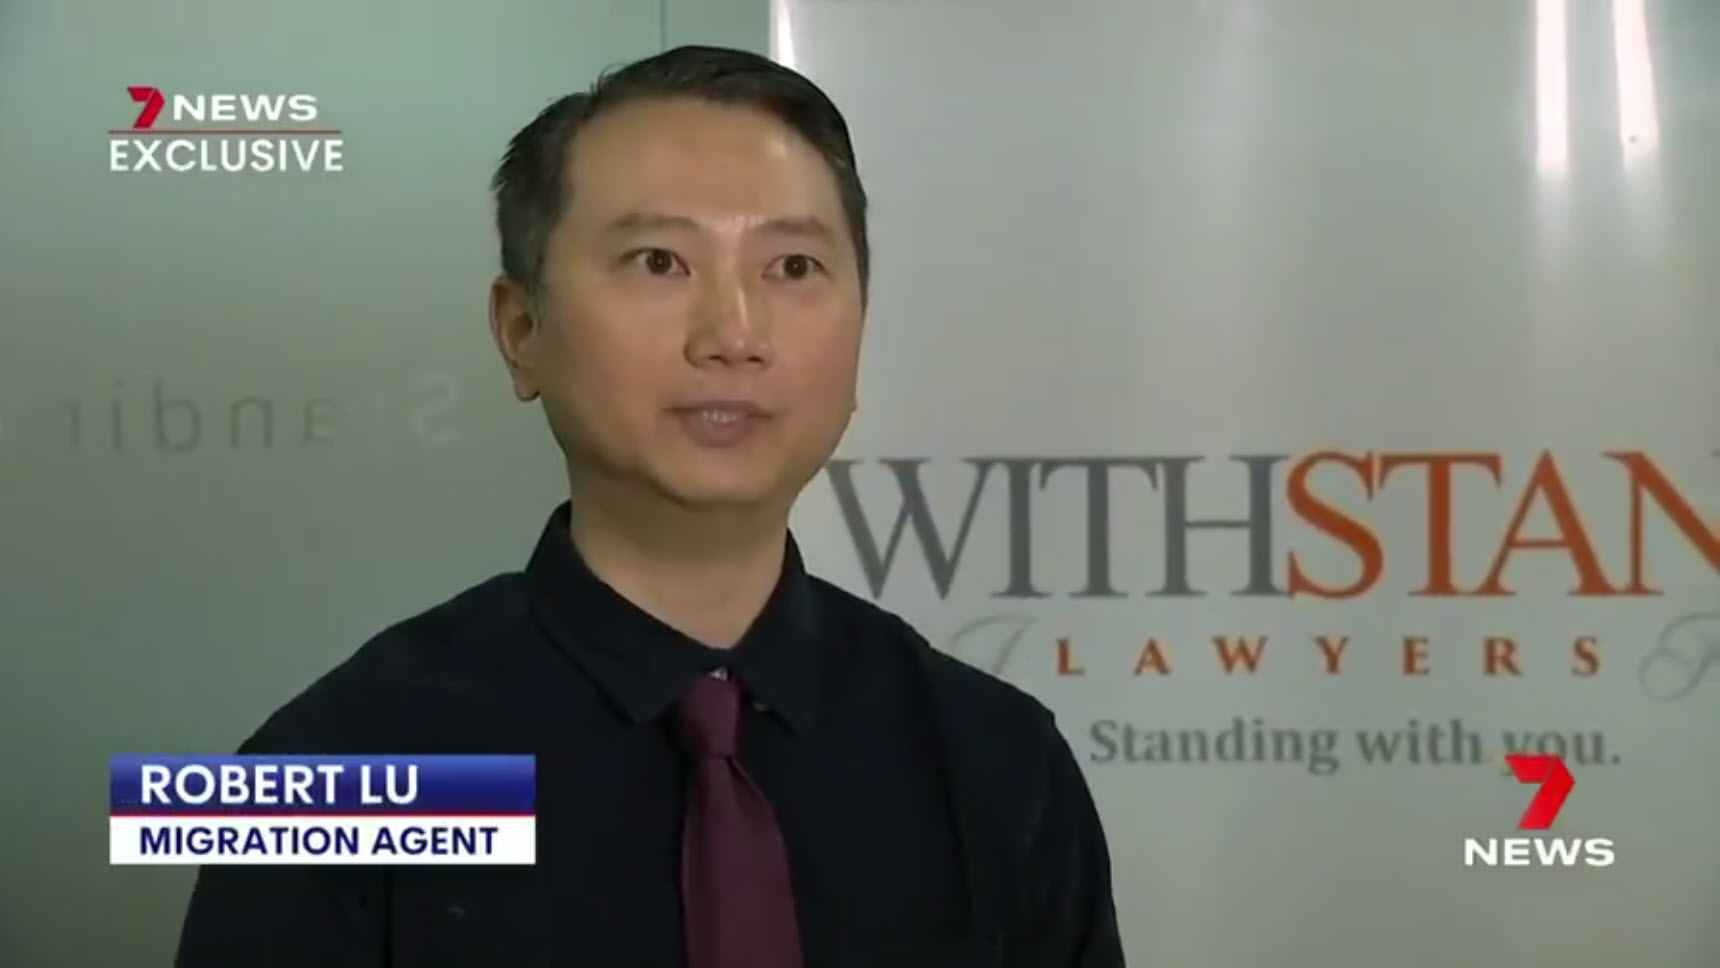 Withstand lawyers channel 7 robert lu